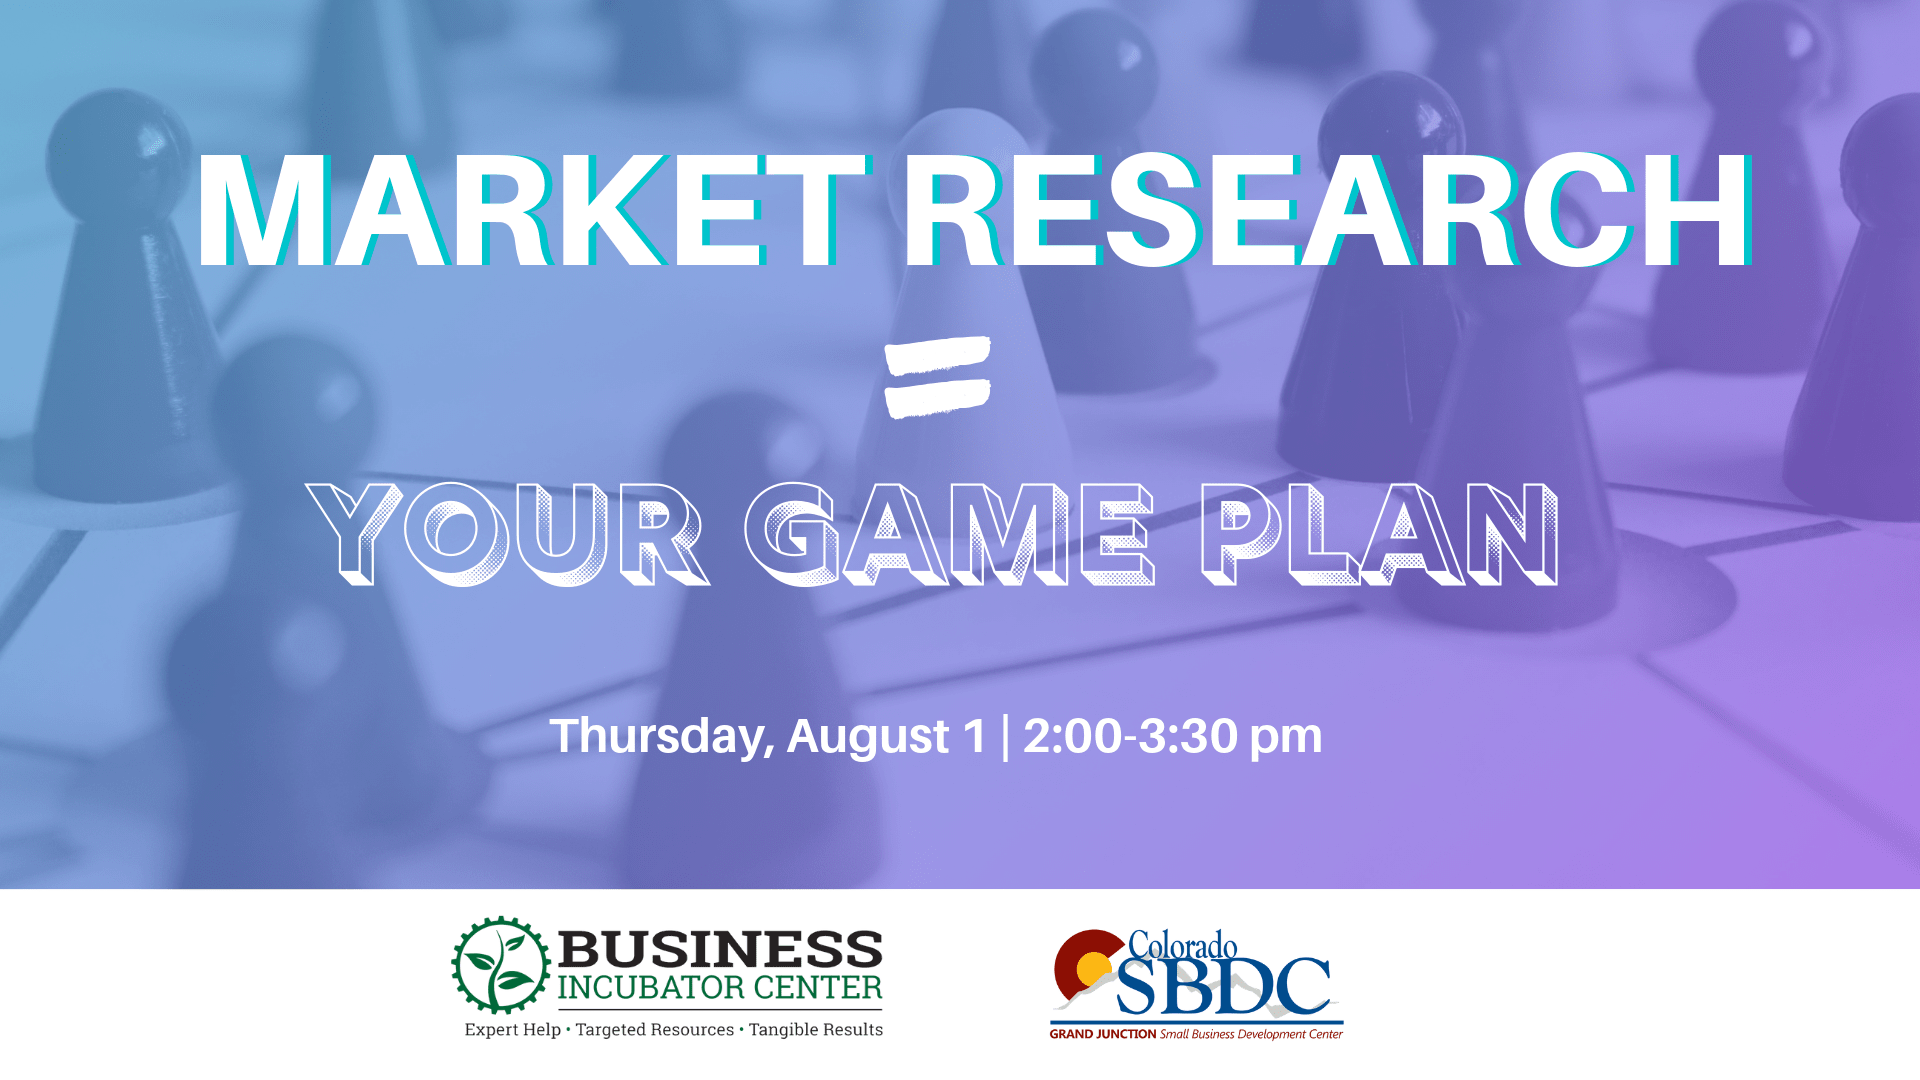 Market Research = Your Game Plan